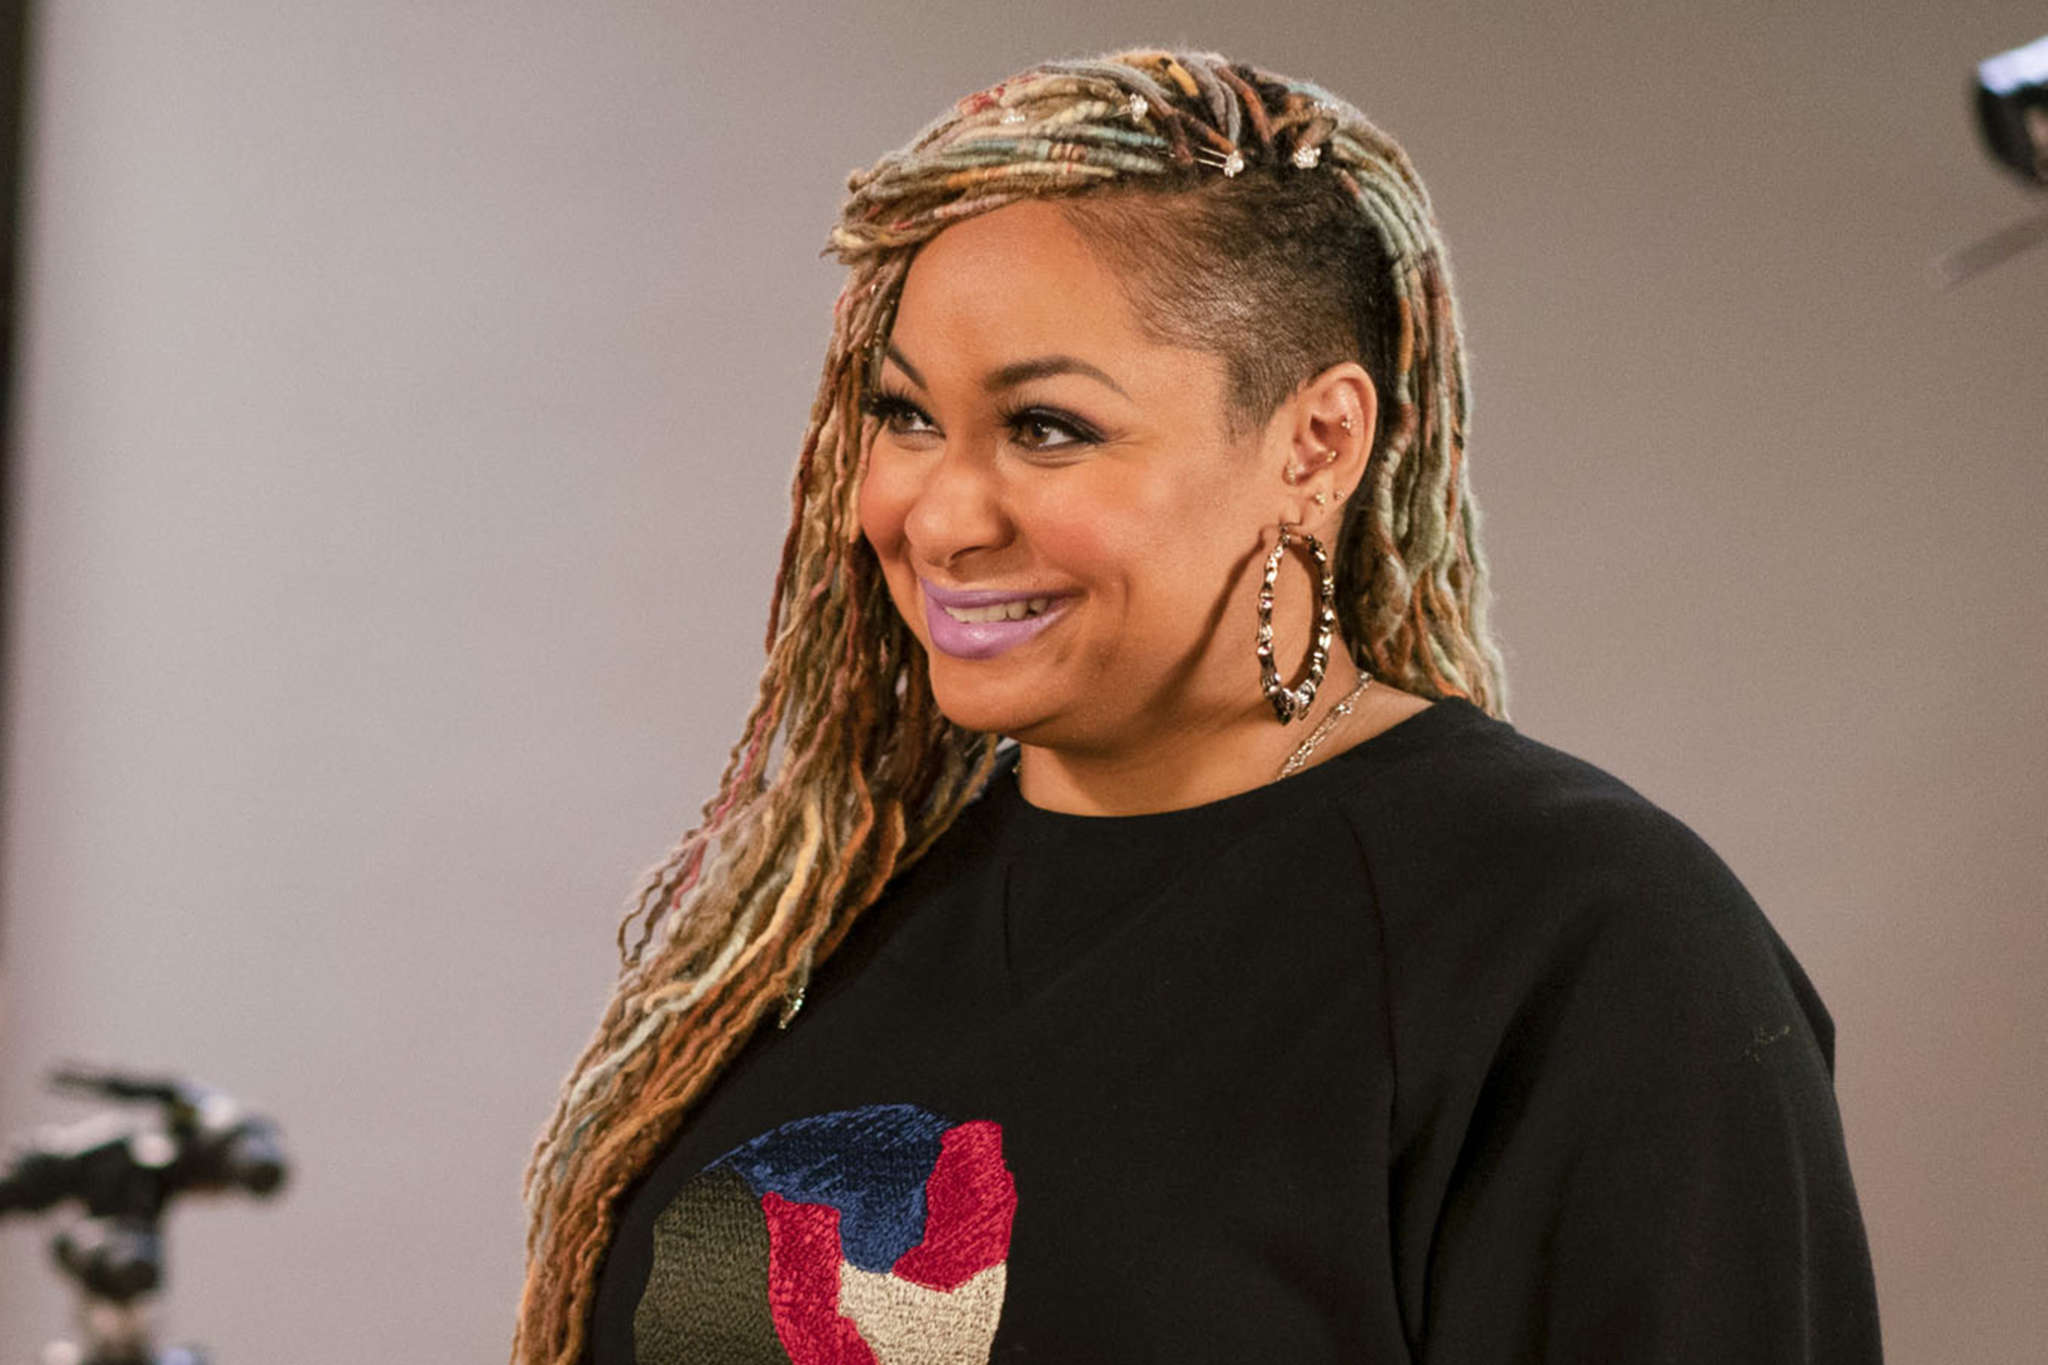 raven-symone-asked-if-she-would-host-along-cheetah-girls-co-star-on-the-real-see-her-reaction